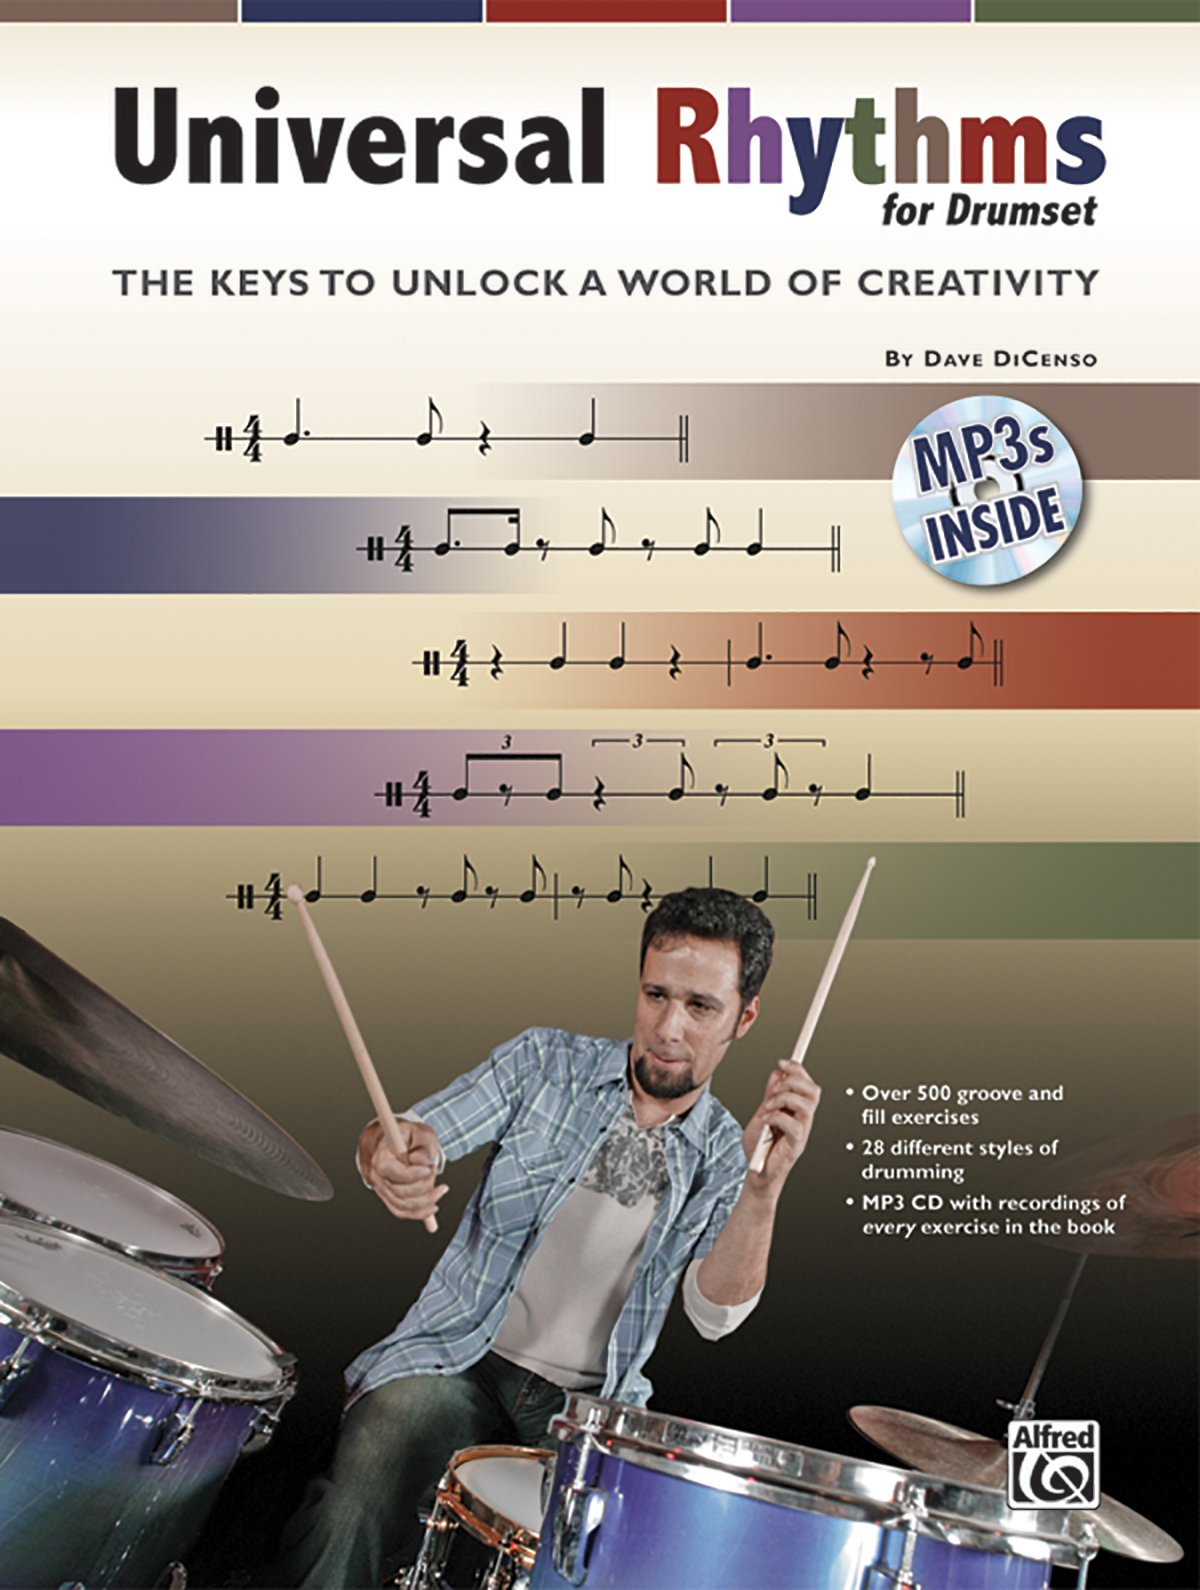 Universal Rhythms for Drummers: The Keys to Unlock a World of Creativity, Book & CD